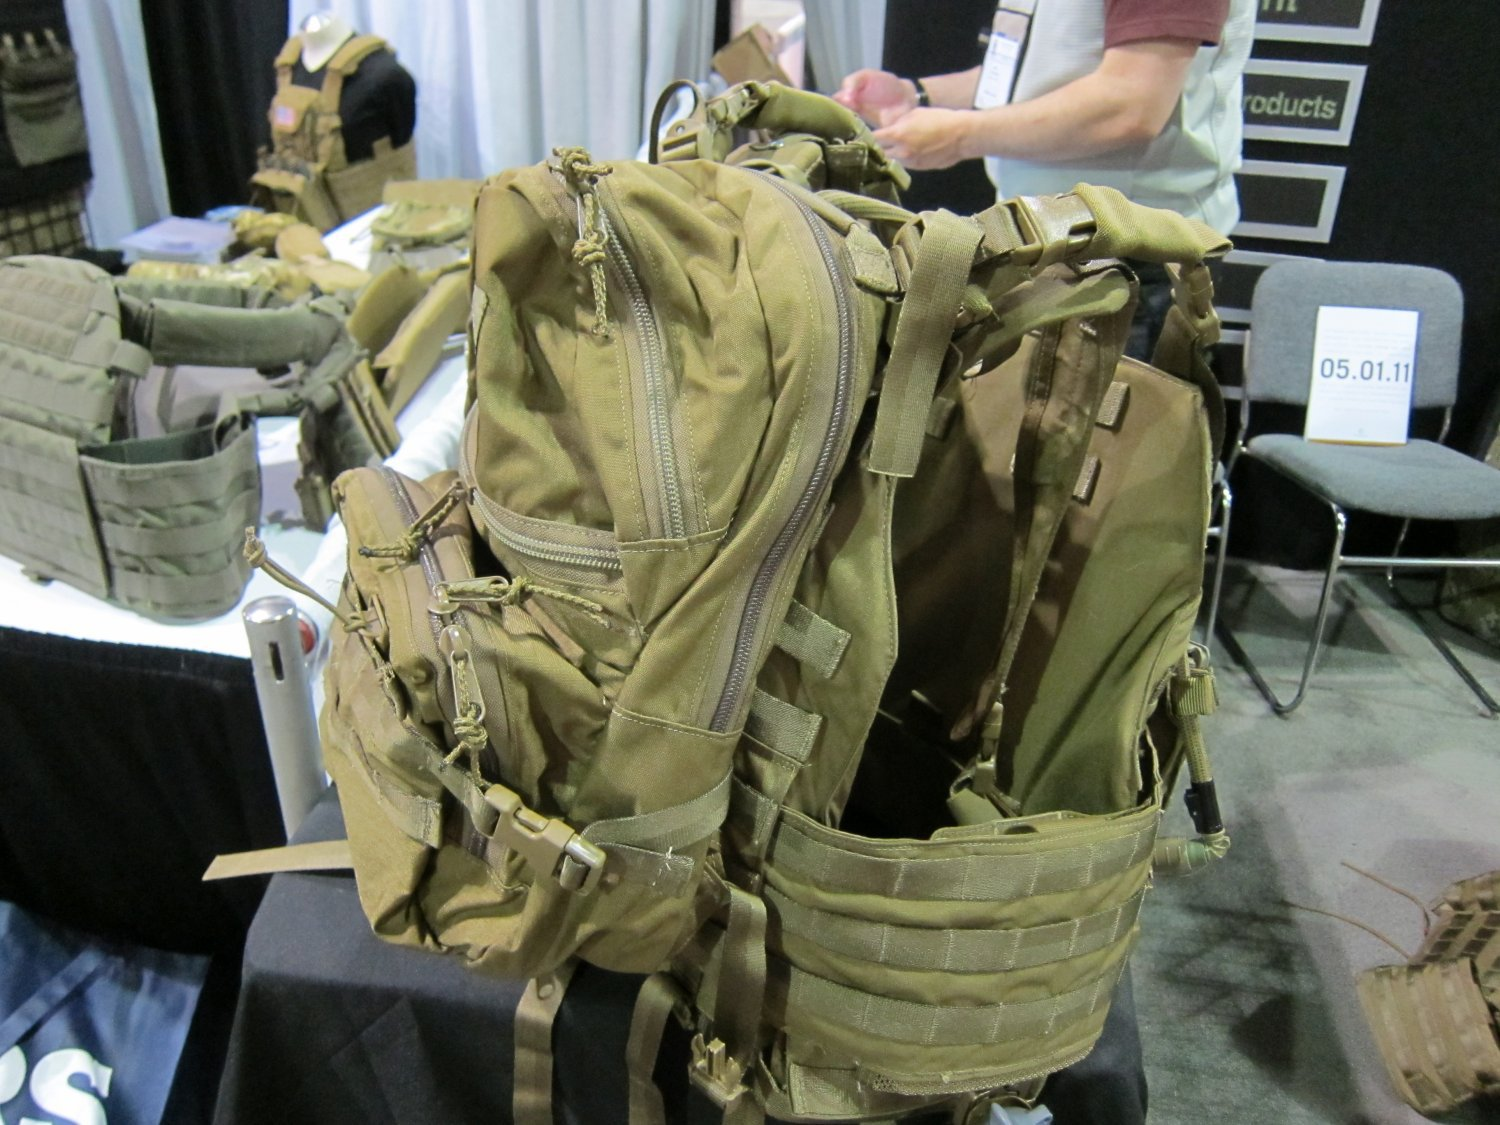 Archangel Armor Internal Frame Load Bearing System IFLBS Version 5 Tactical Armor Plate Carrier System SOFIC 2011 11 <!  :en  >Archangel Armor Internal Frame Load Bearing System (IFLBS) Version 5 Tactical Armor Plate Carrier/Tactical Vest System: Lighten your load when youre in combat mode!<!  :  >